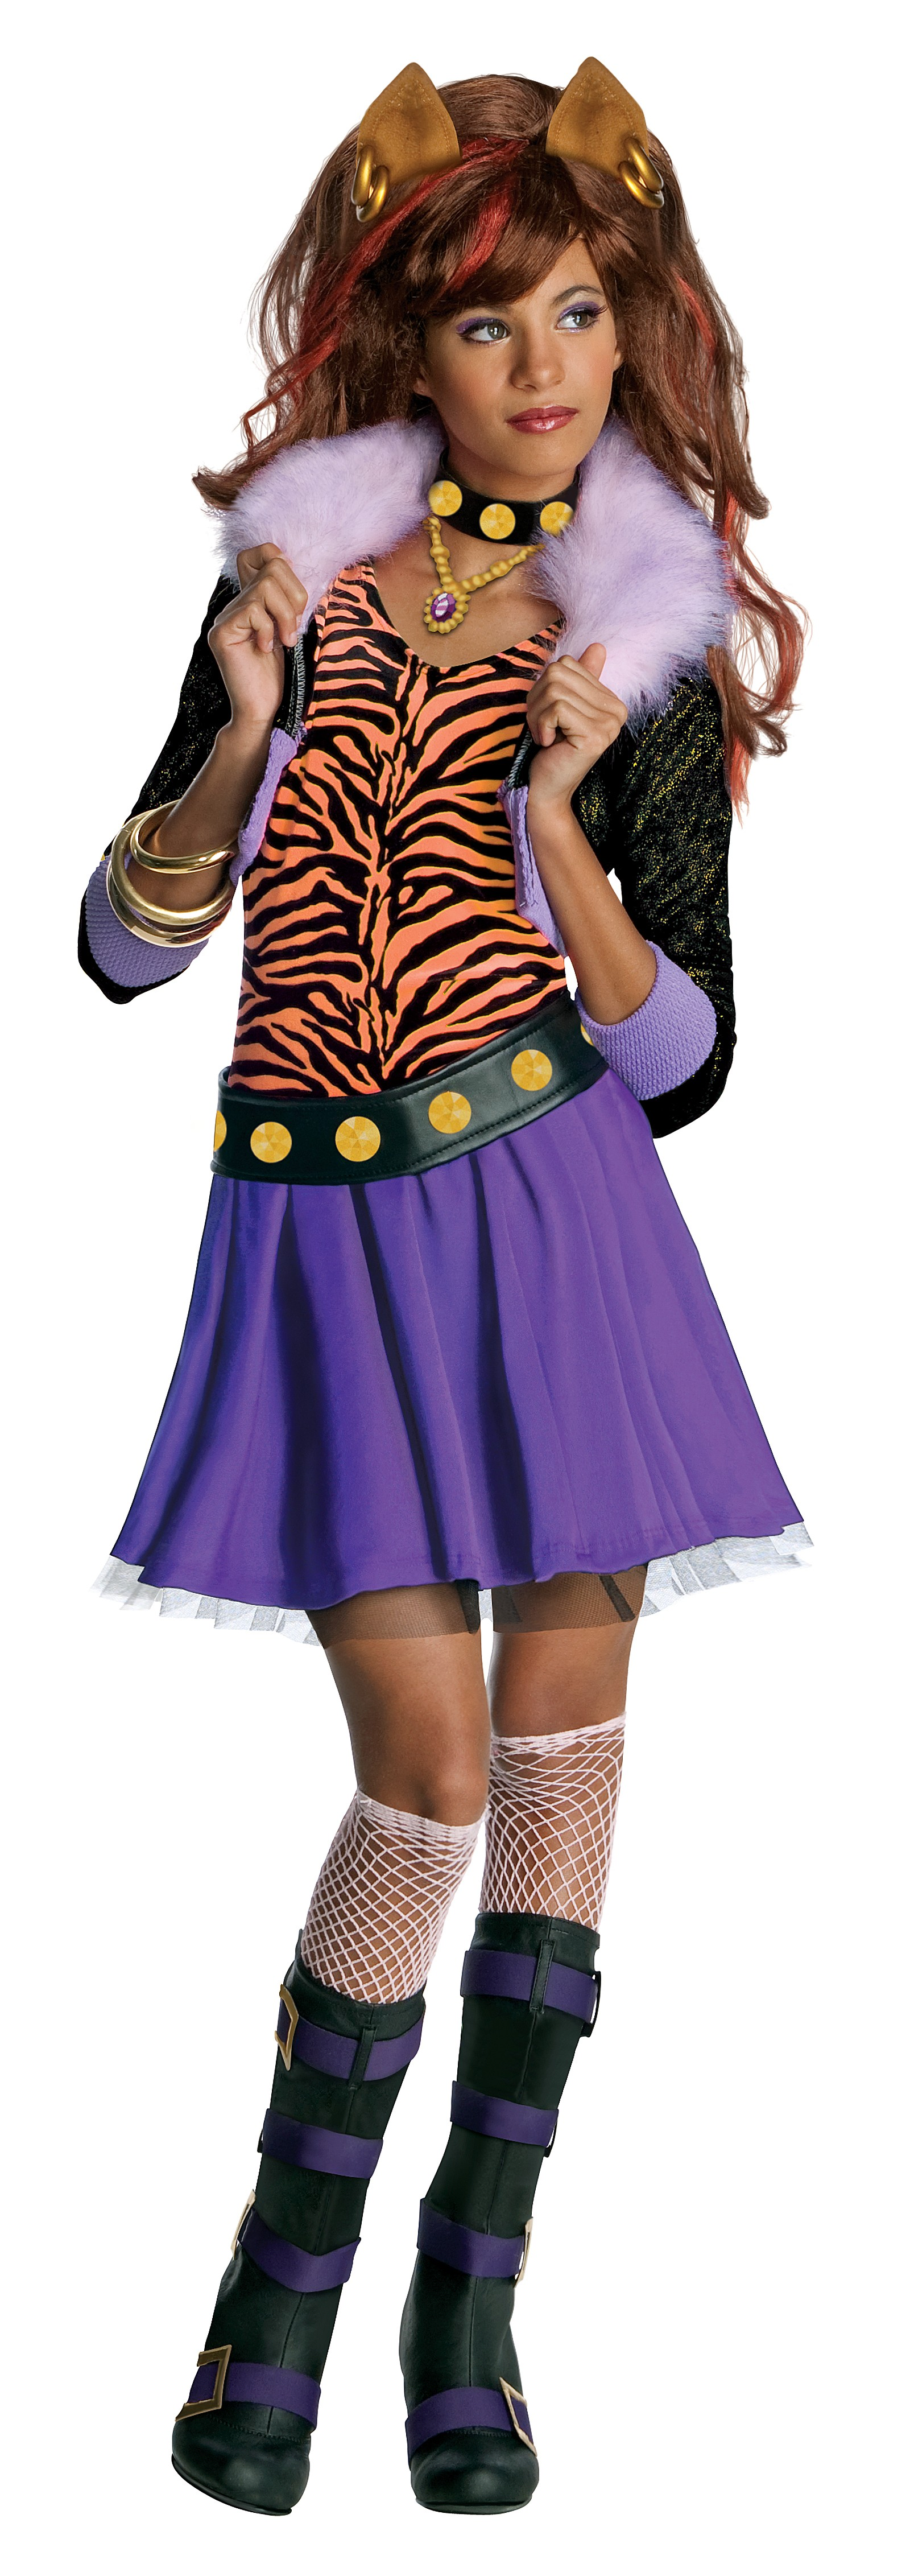 Childrenu0027s Monster High Clawdeen Wolf Girlu0027s Costume.jpg  sc 1 st  Costumes.com.au : wolf girl costumes  - Germanpascual.Com